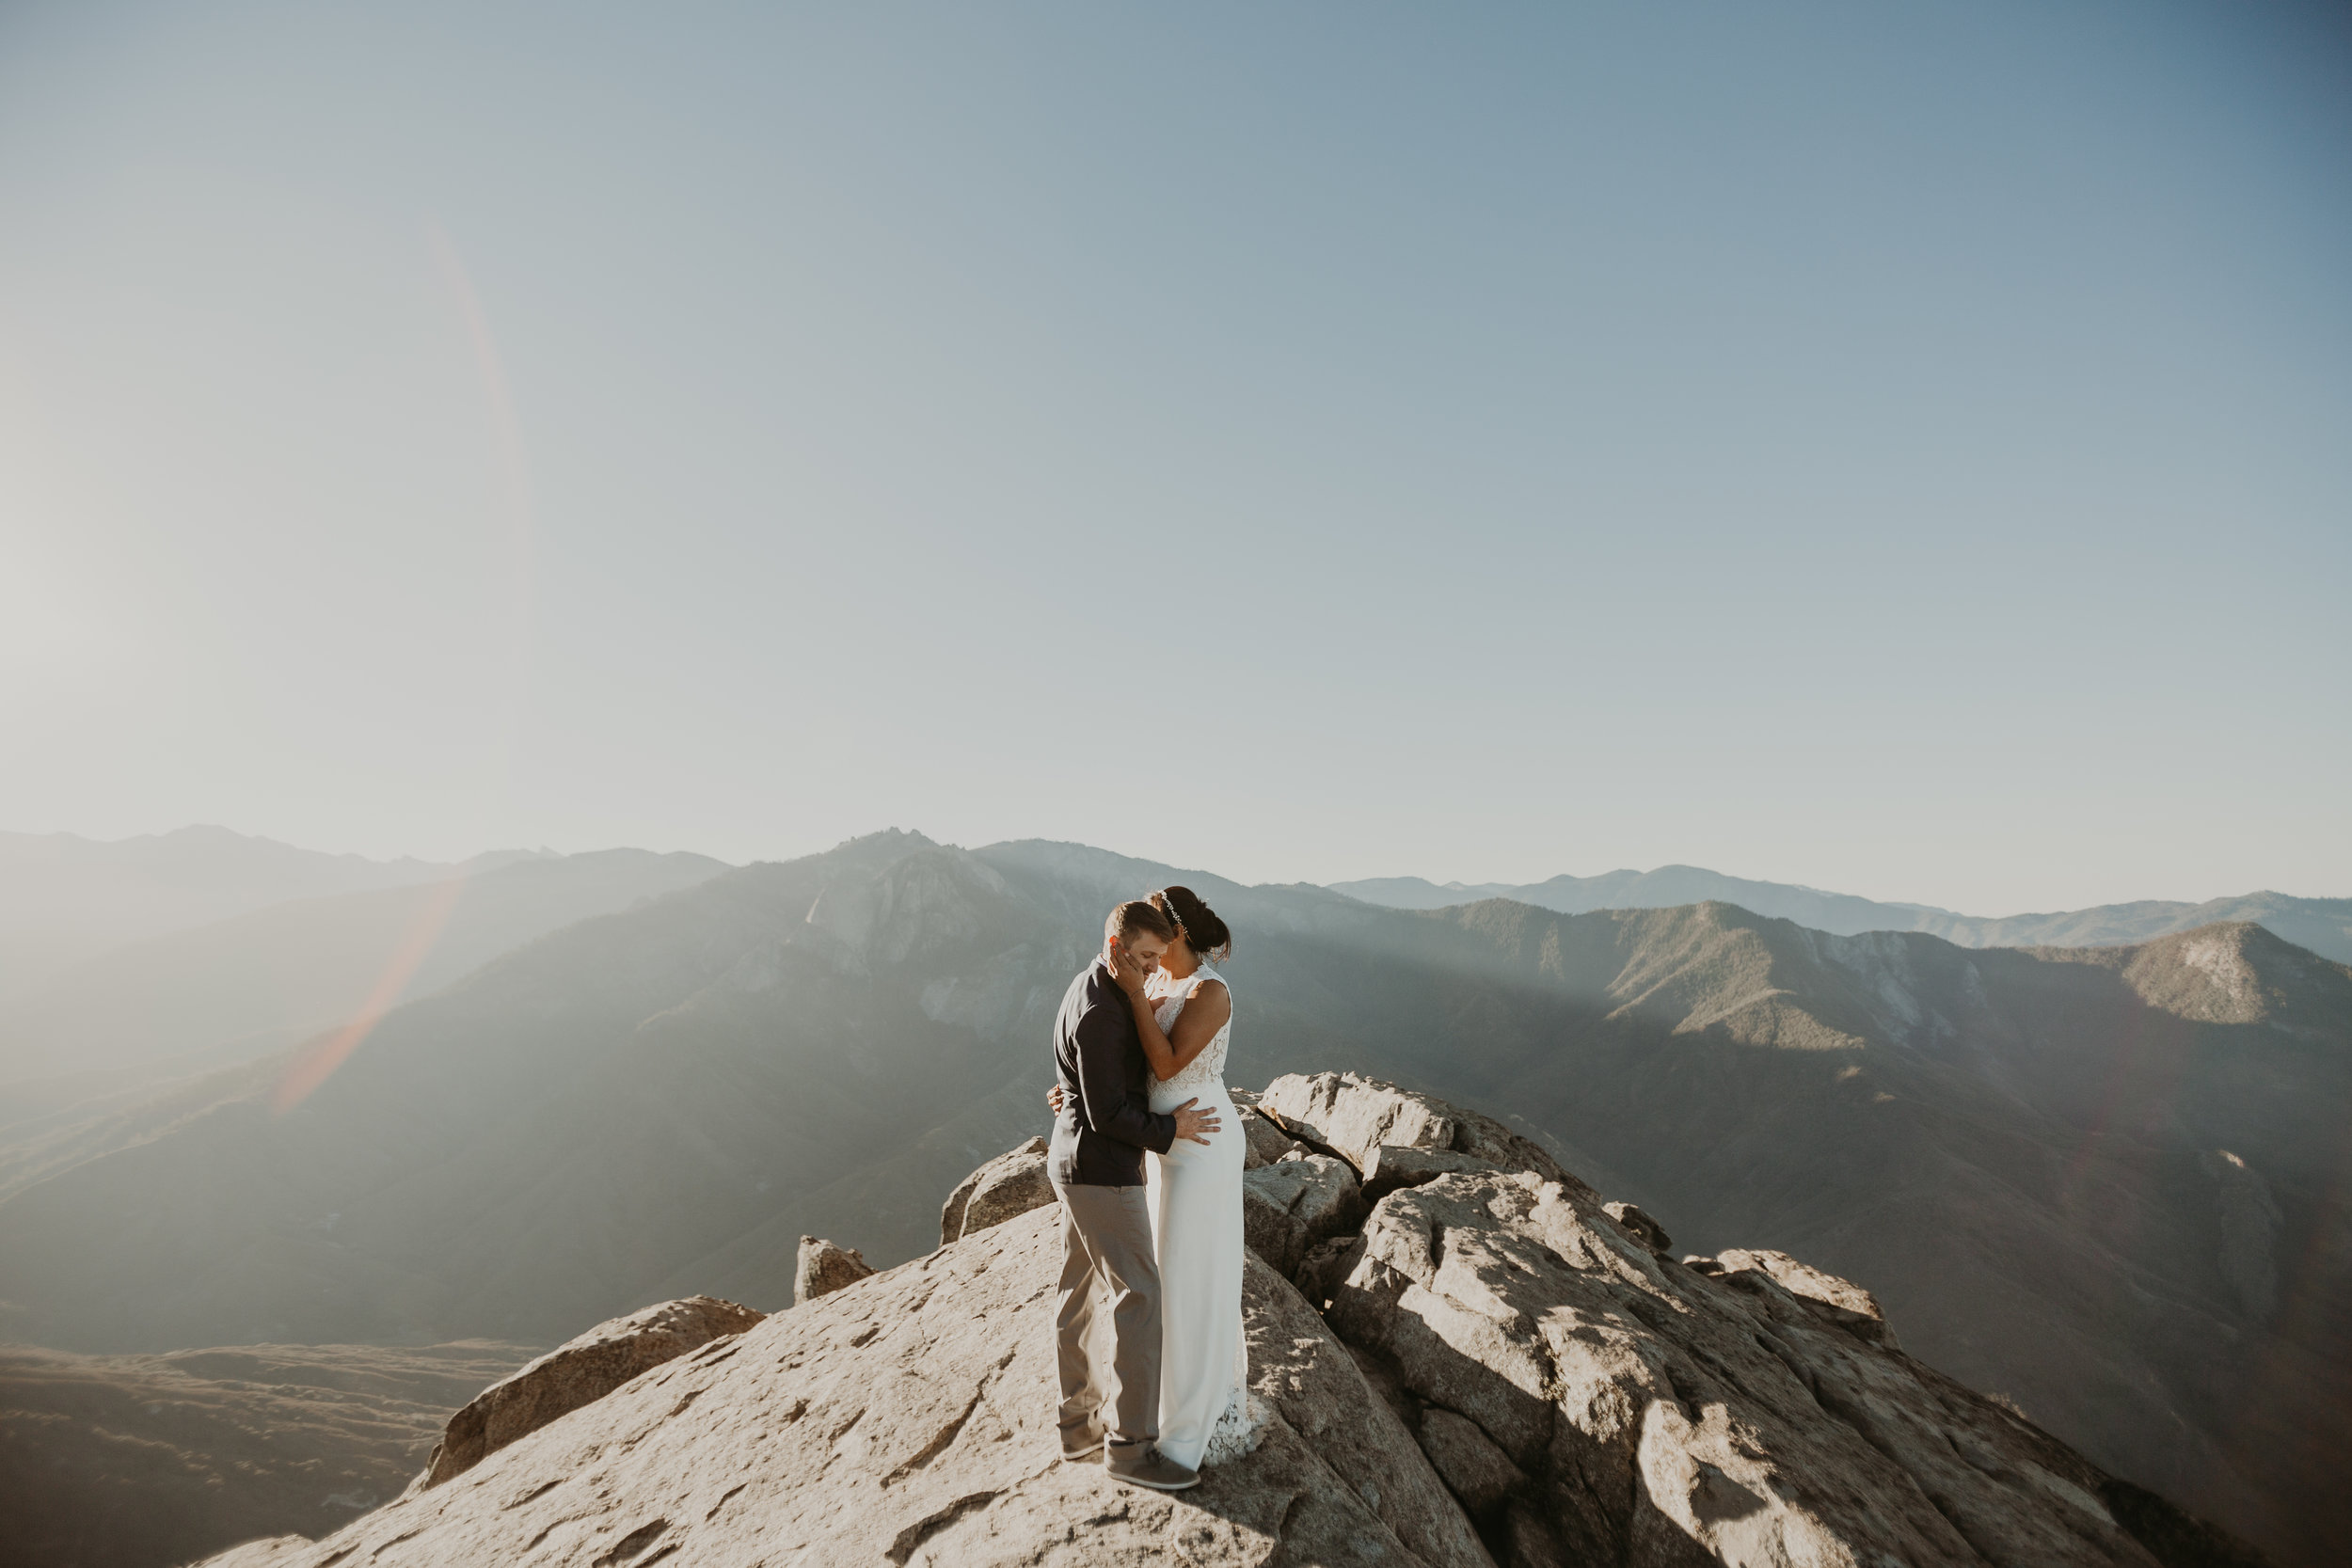 nicole-daacke-photography-sequoia-national-park-adventurous-elopement-sequoia-elopement-photographer-redwoods-california-intimate-wedding-photographer-5.jpg